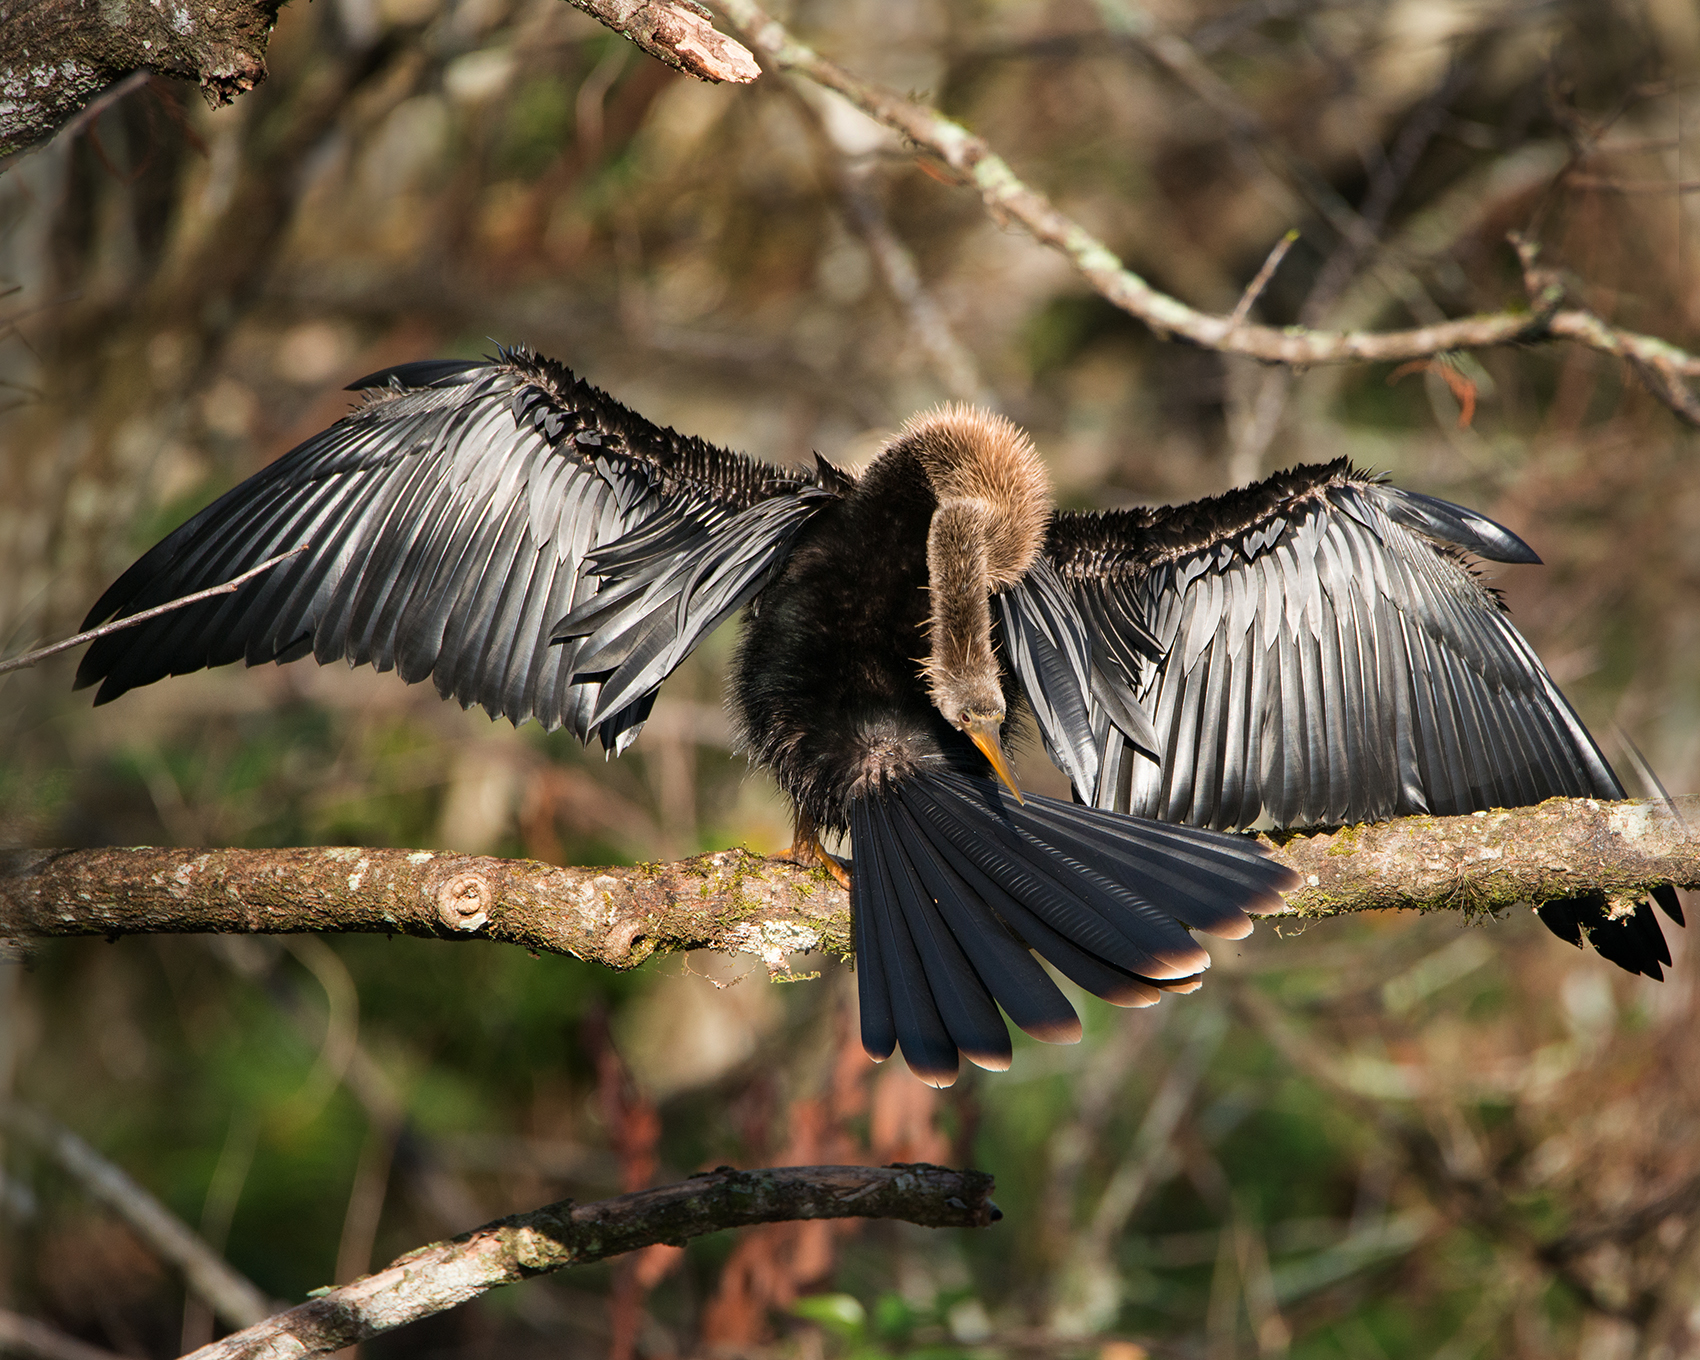 #anhinga, #adult, #black, #neck, #mother, #bird, #florida, #corkscrew